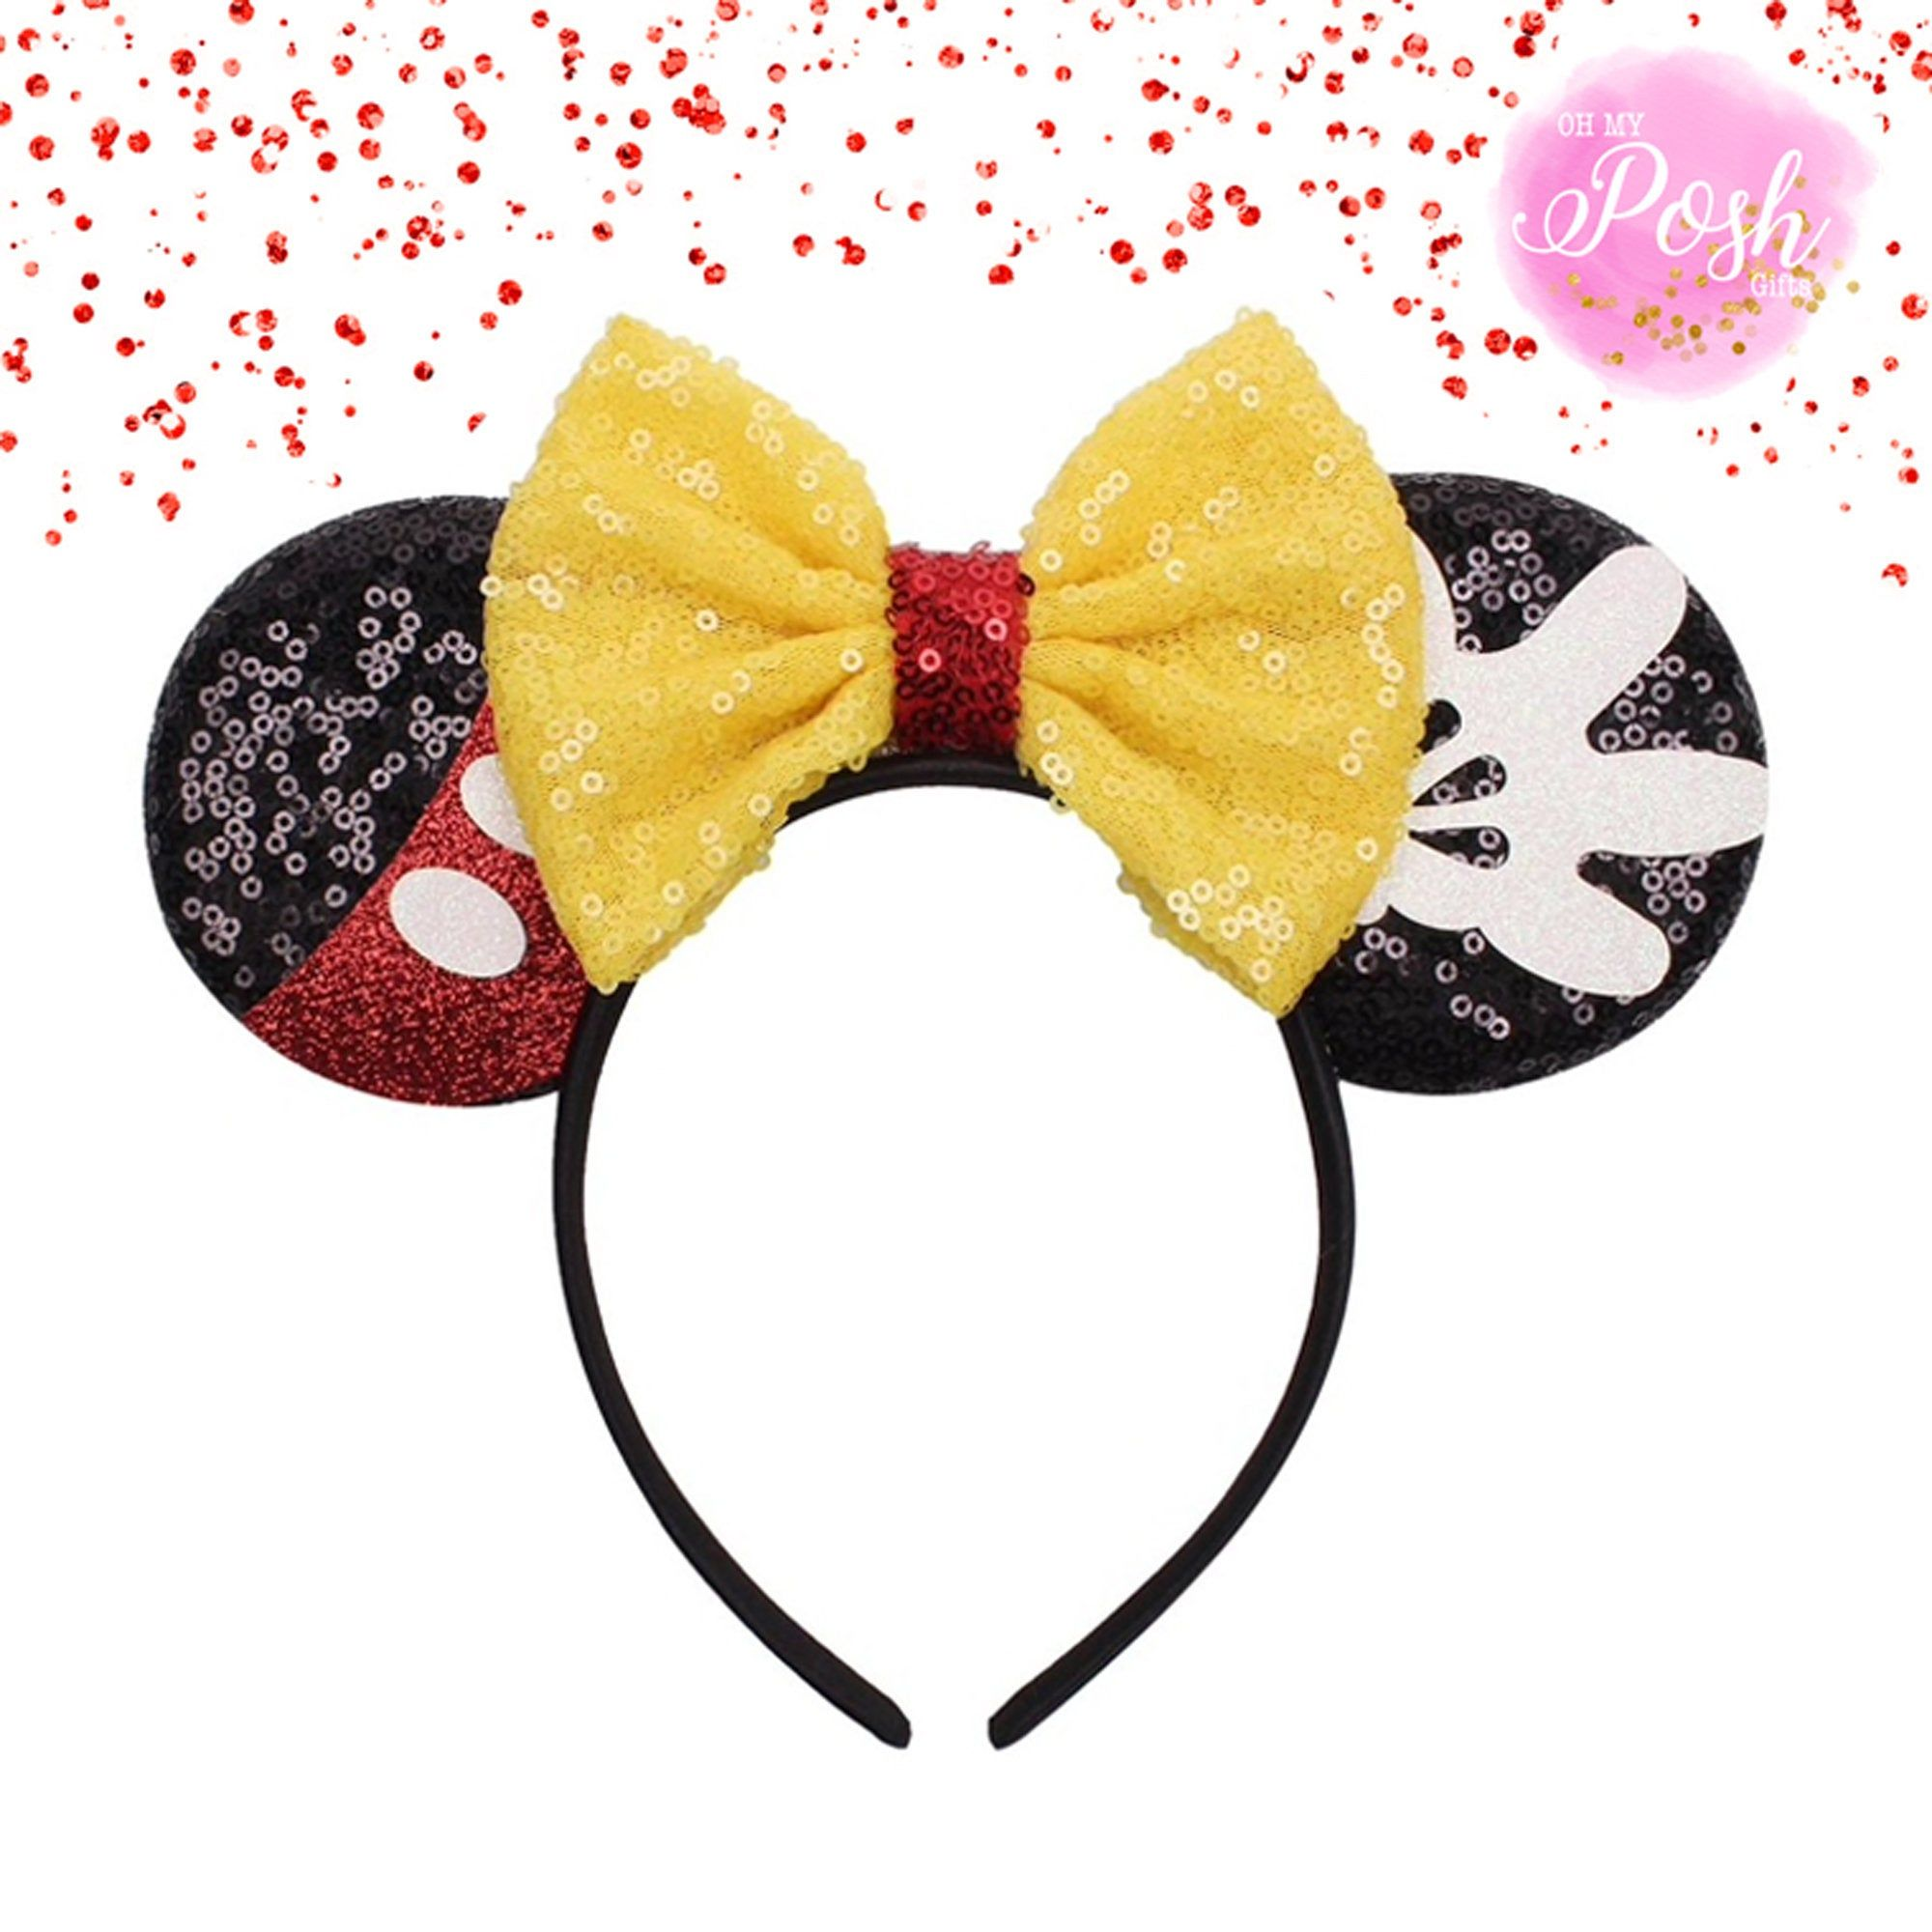 YanJie Lovely Sequin Mouse Ears Headband Glitter Hair Accessories Party Favor Decoration for Children /& Adults